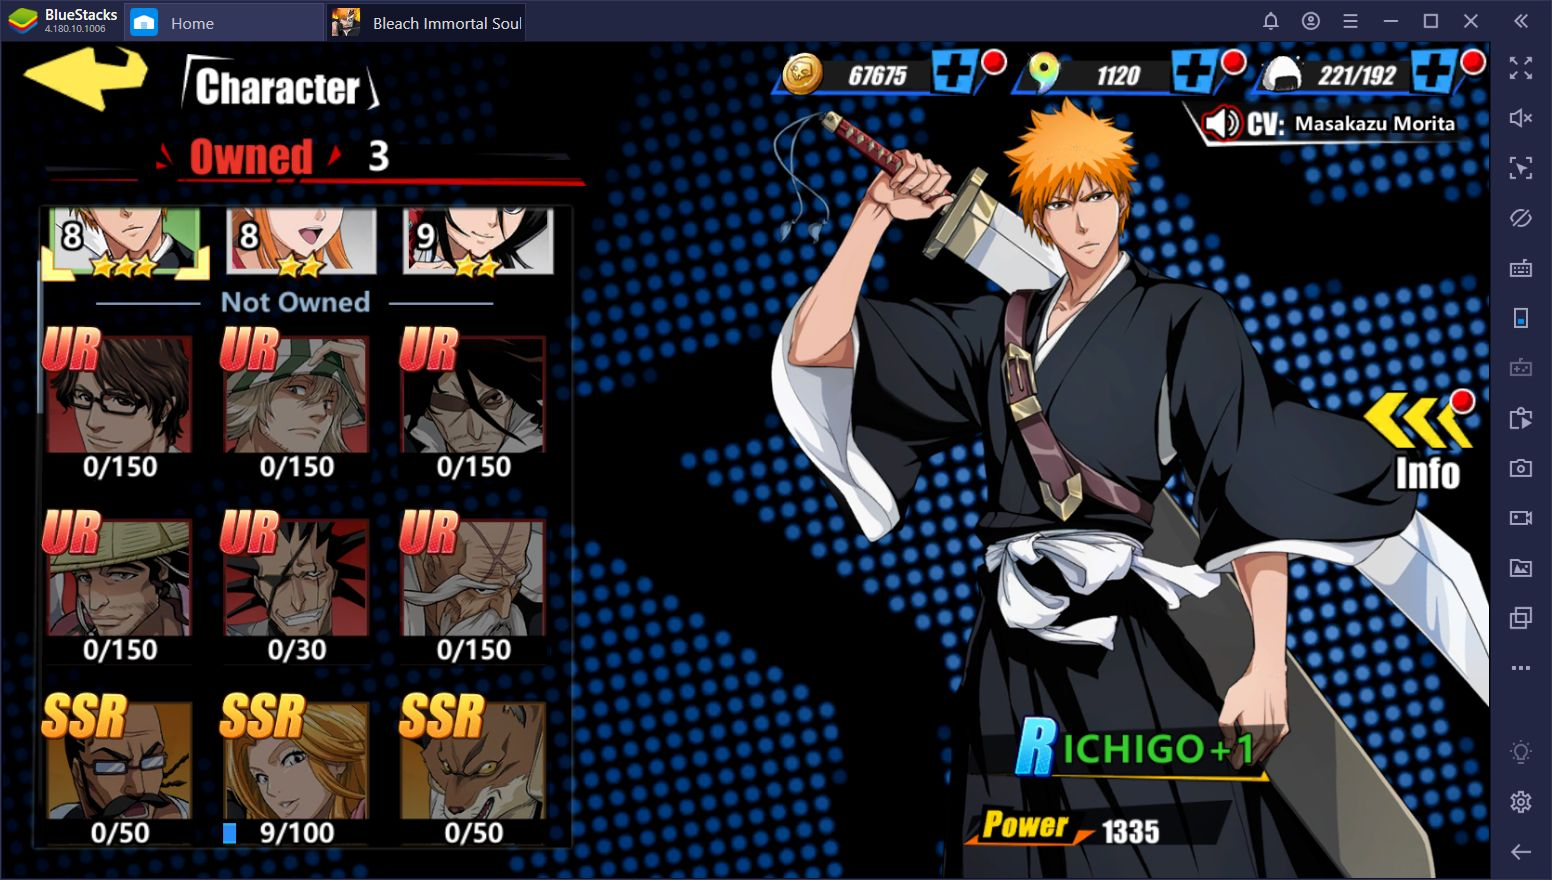 Beginner's Guide for Bleach: Immortal Soul - All the Starter Tips You Need to Know